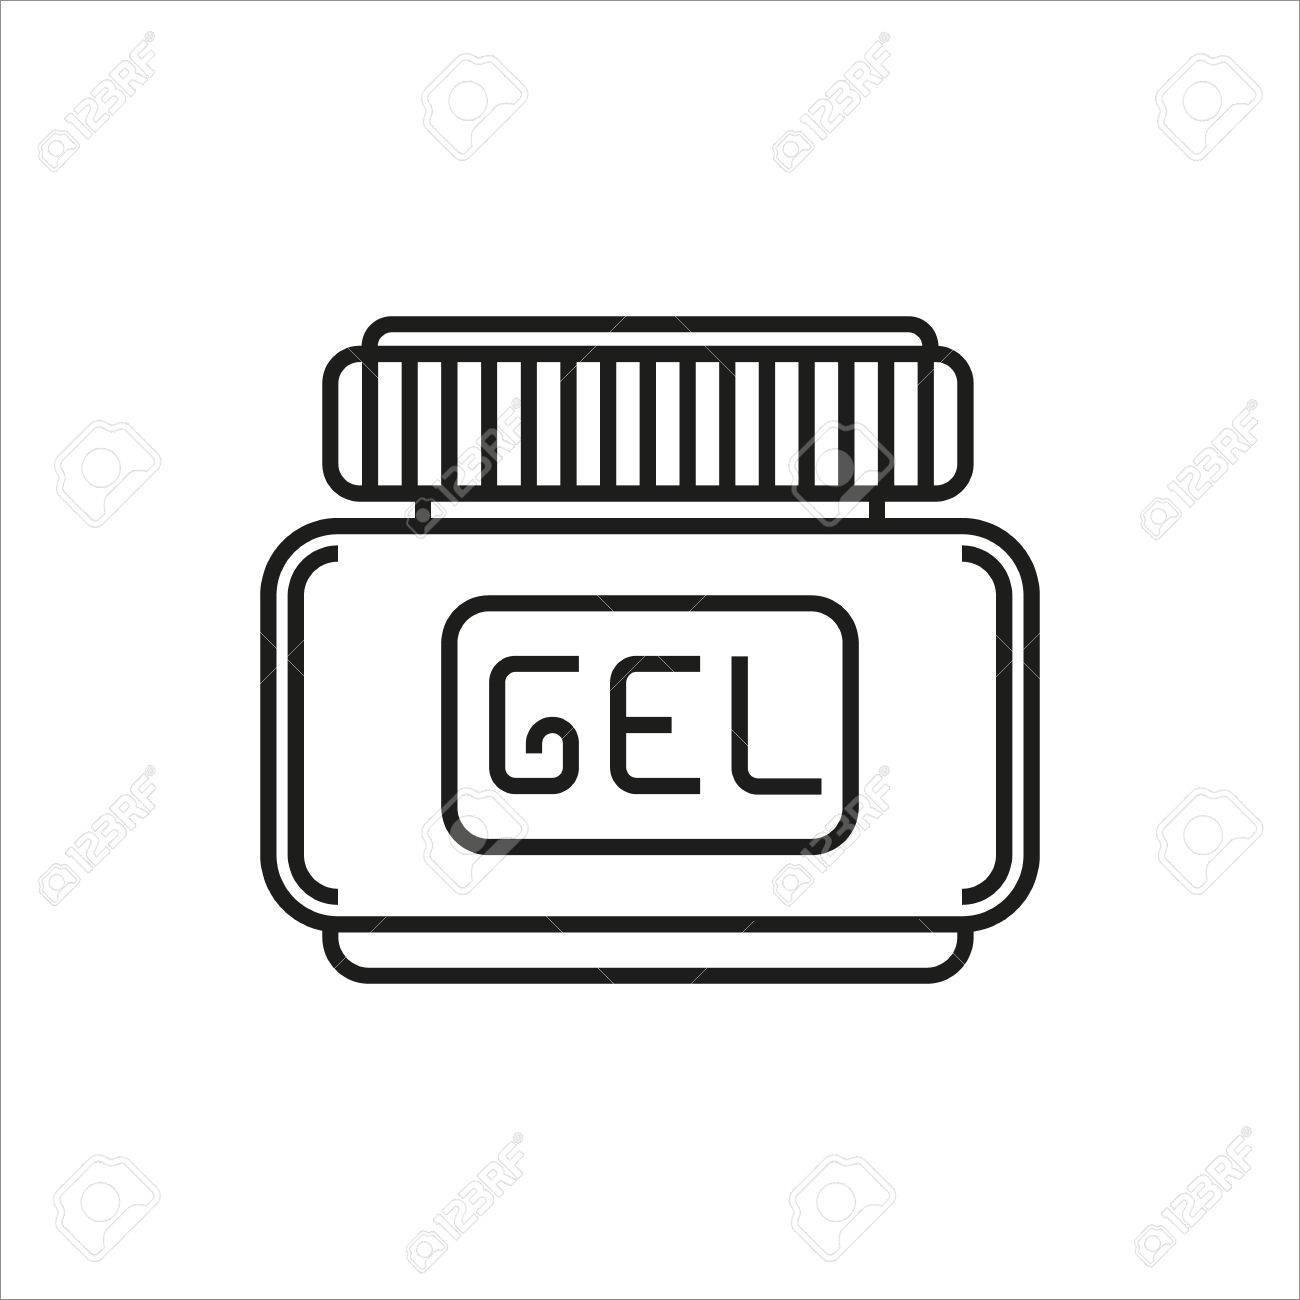 Hairgel clipart png library stock Hair gel simple icon on white background » Clipart Portal png library stock